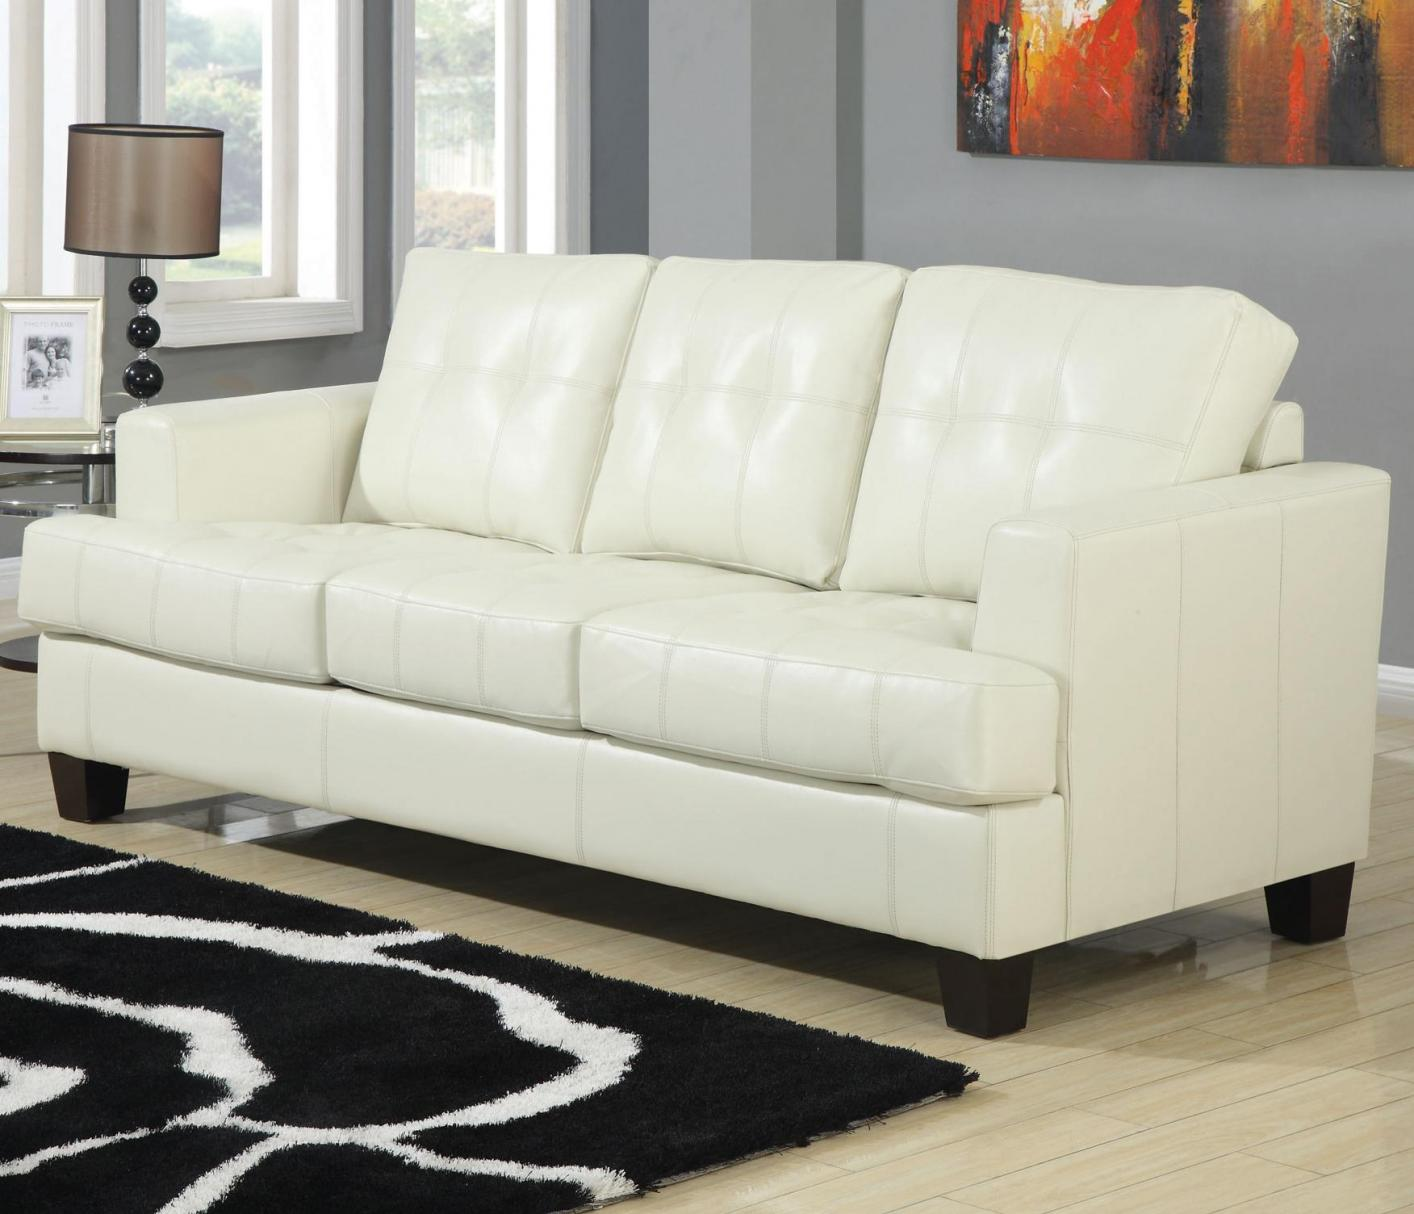 beige sleeper sofa casters for wooden floors samuel leather bed steal a furniture